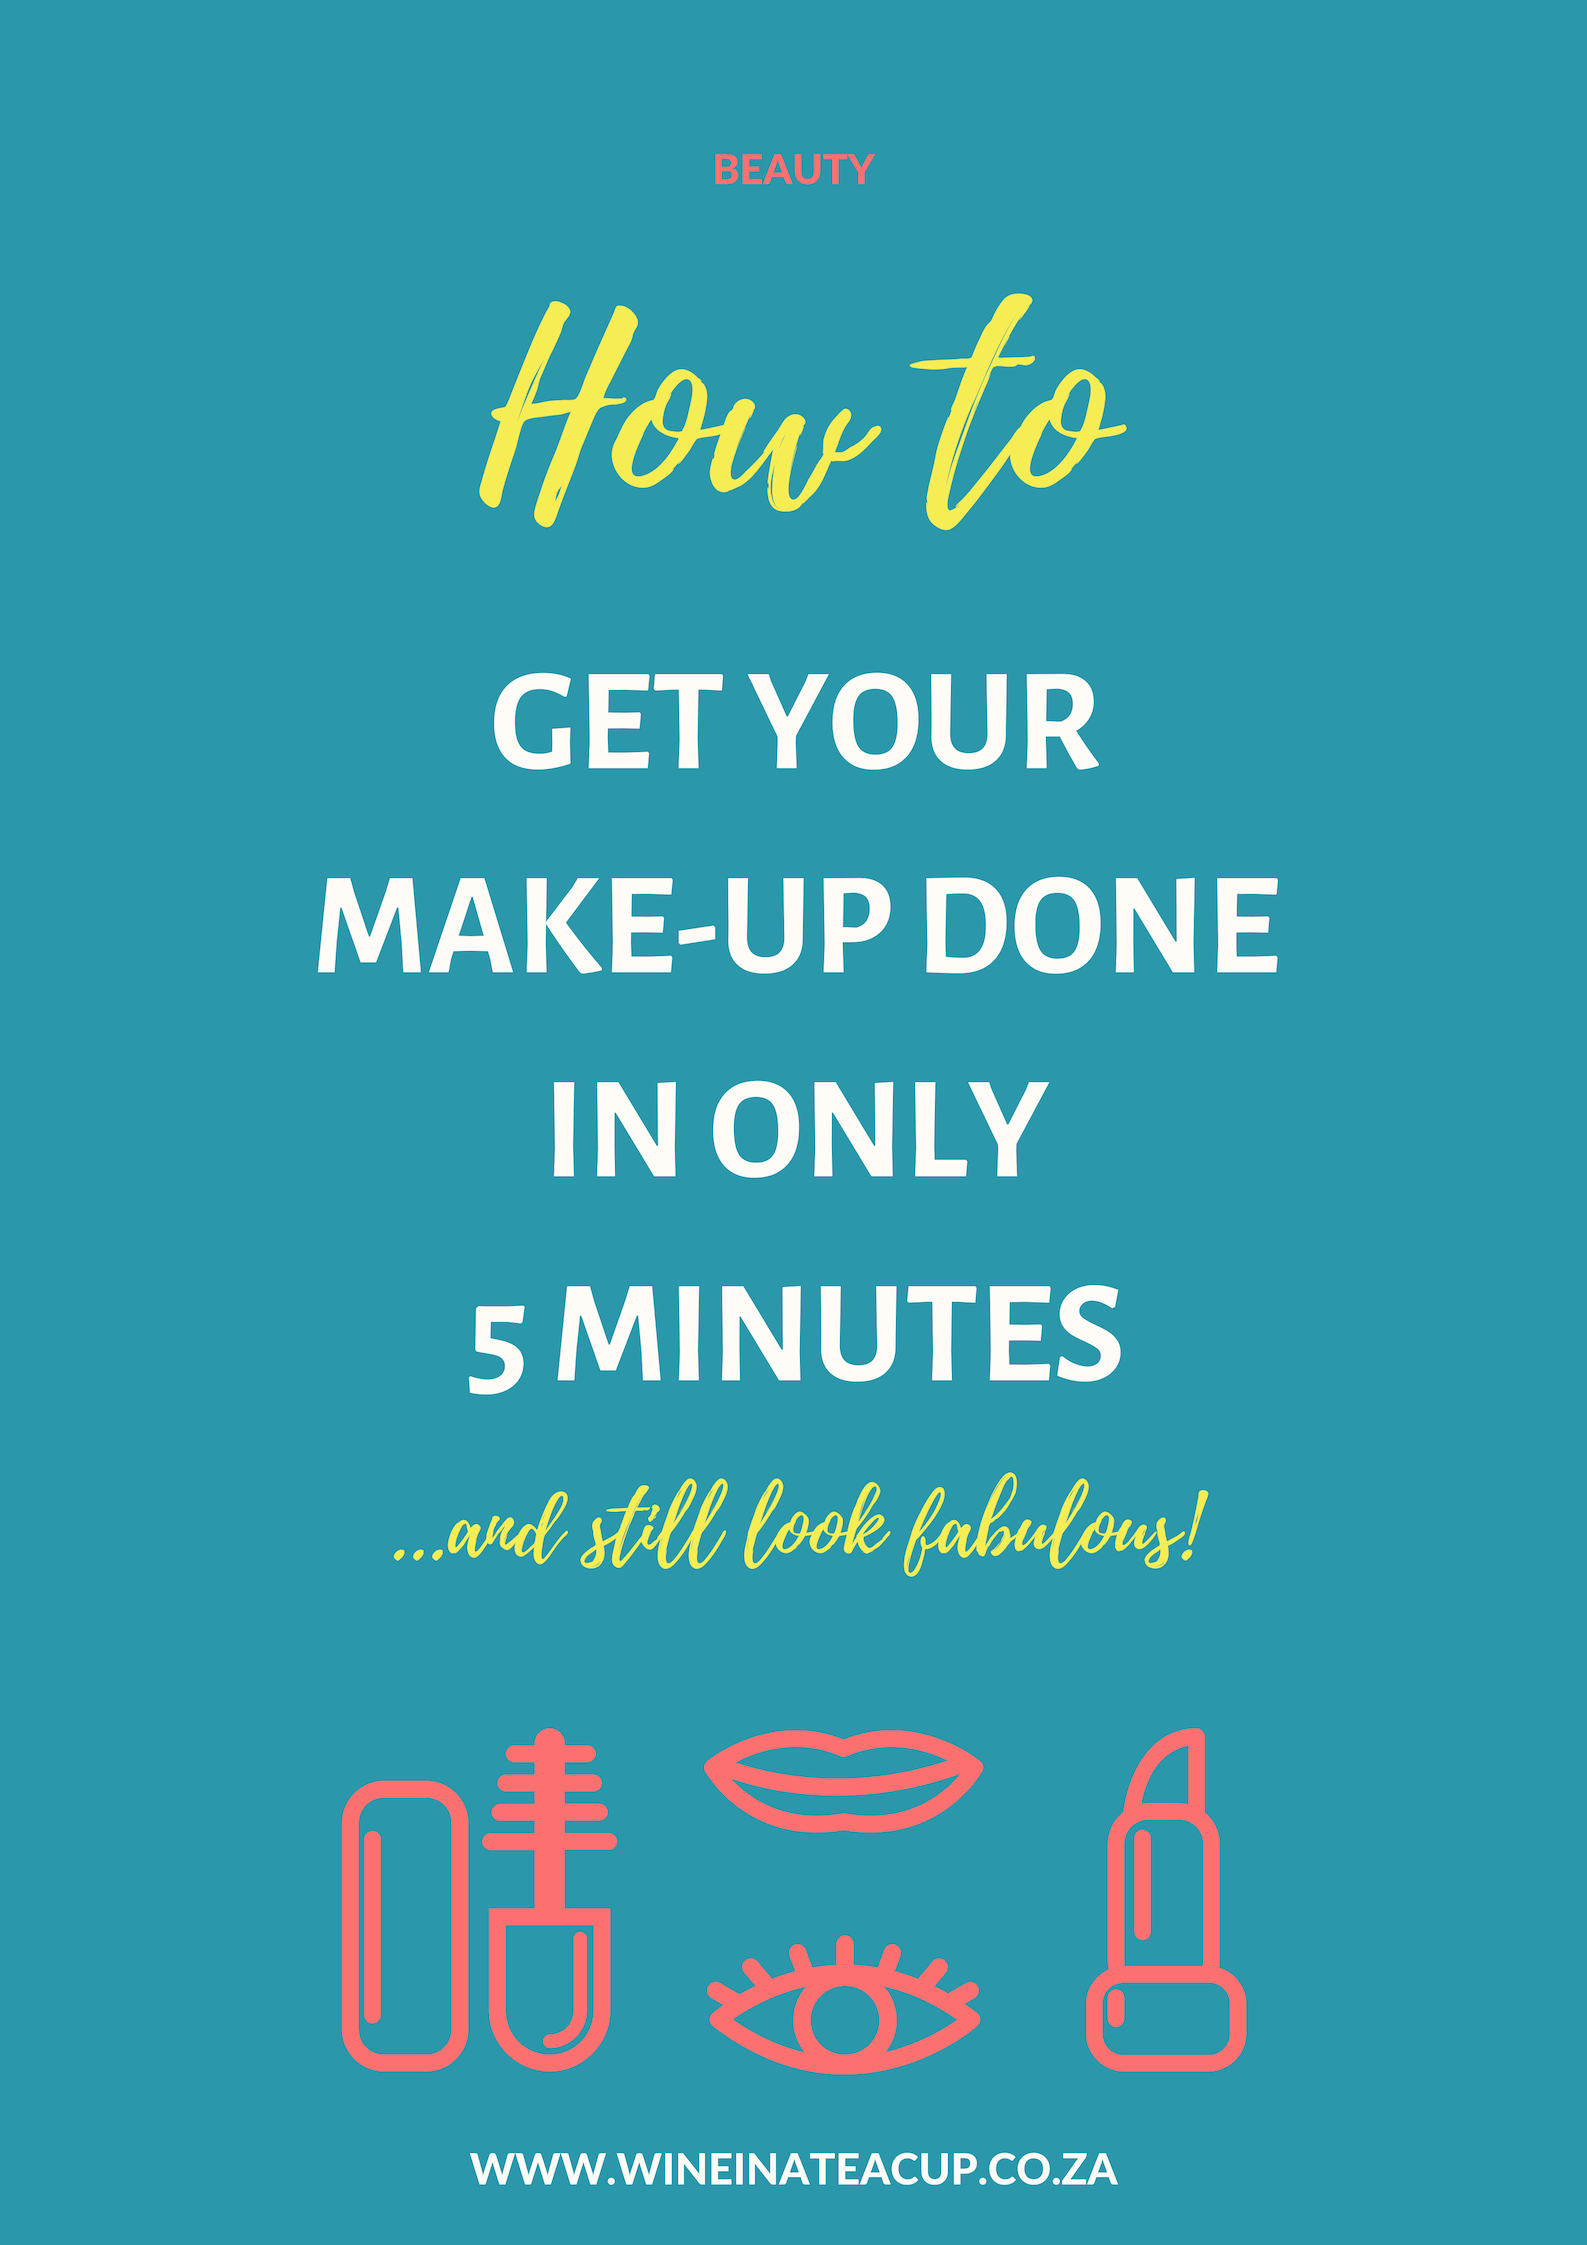 How to get your make-up done in ouly 5 minutes and still look fabulous! Fast and easy make-up tips for those pushed for time. #mommakeup #mombeauty #mumbeauty #momroutine #timecrunch #essencecosmetics #beautyinaflash